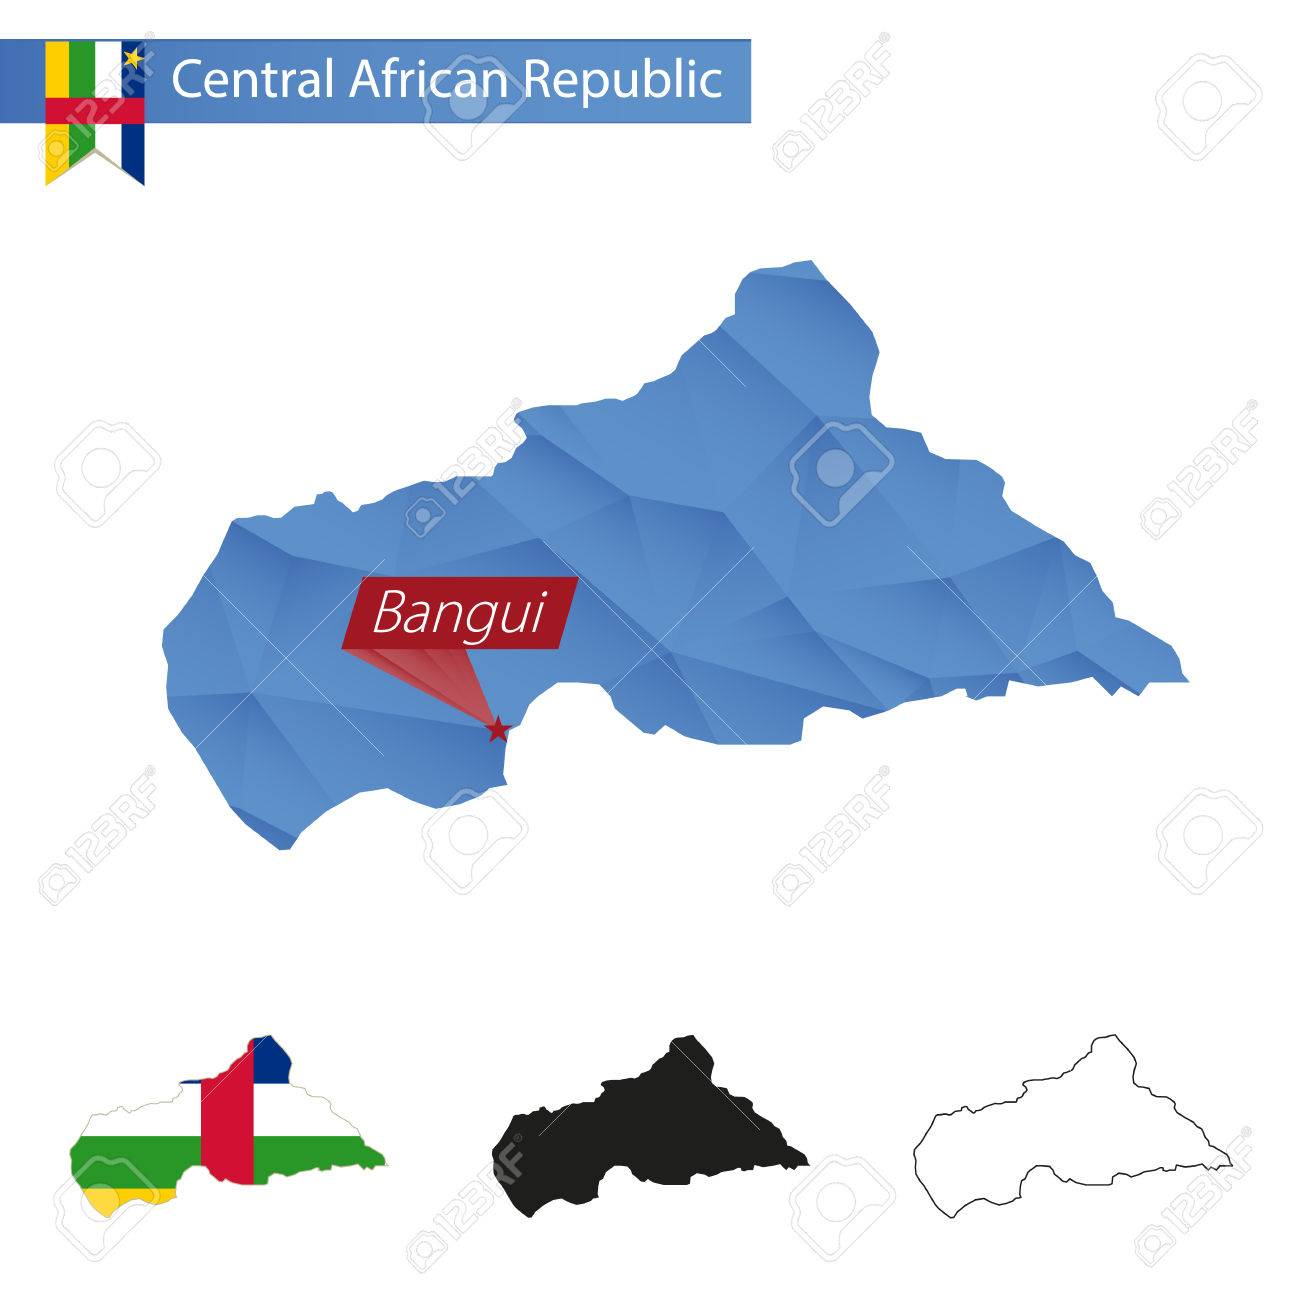 Central African Republic Blue Low Poly Map With Capital Bangui